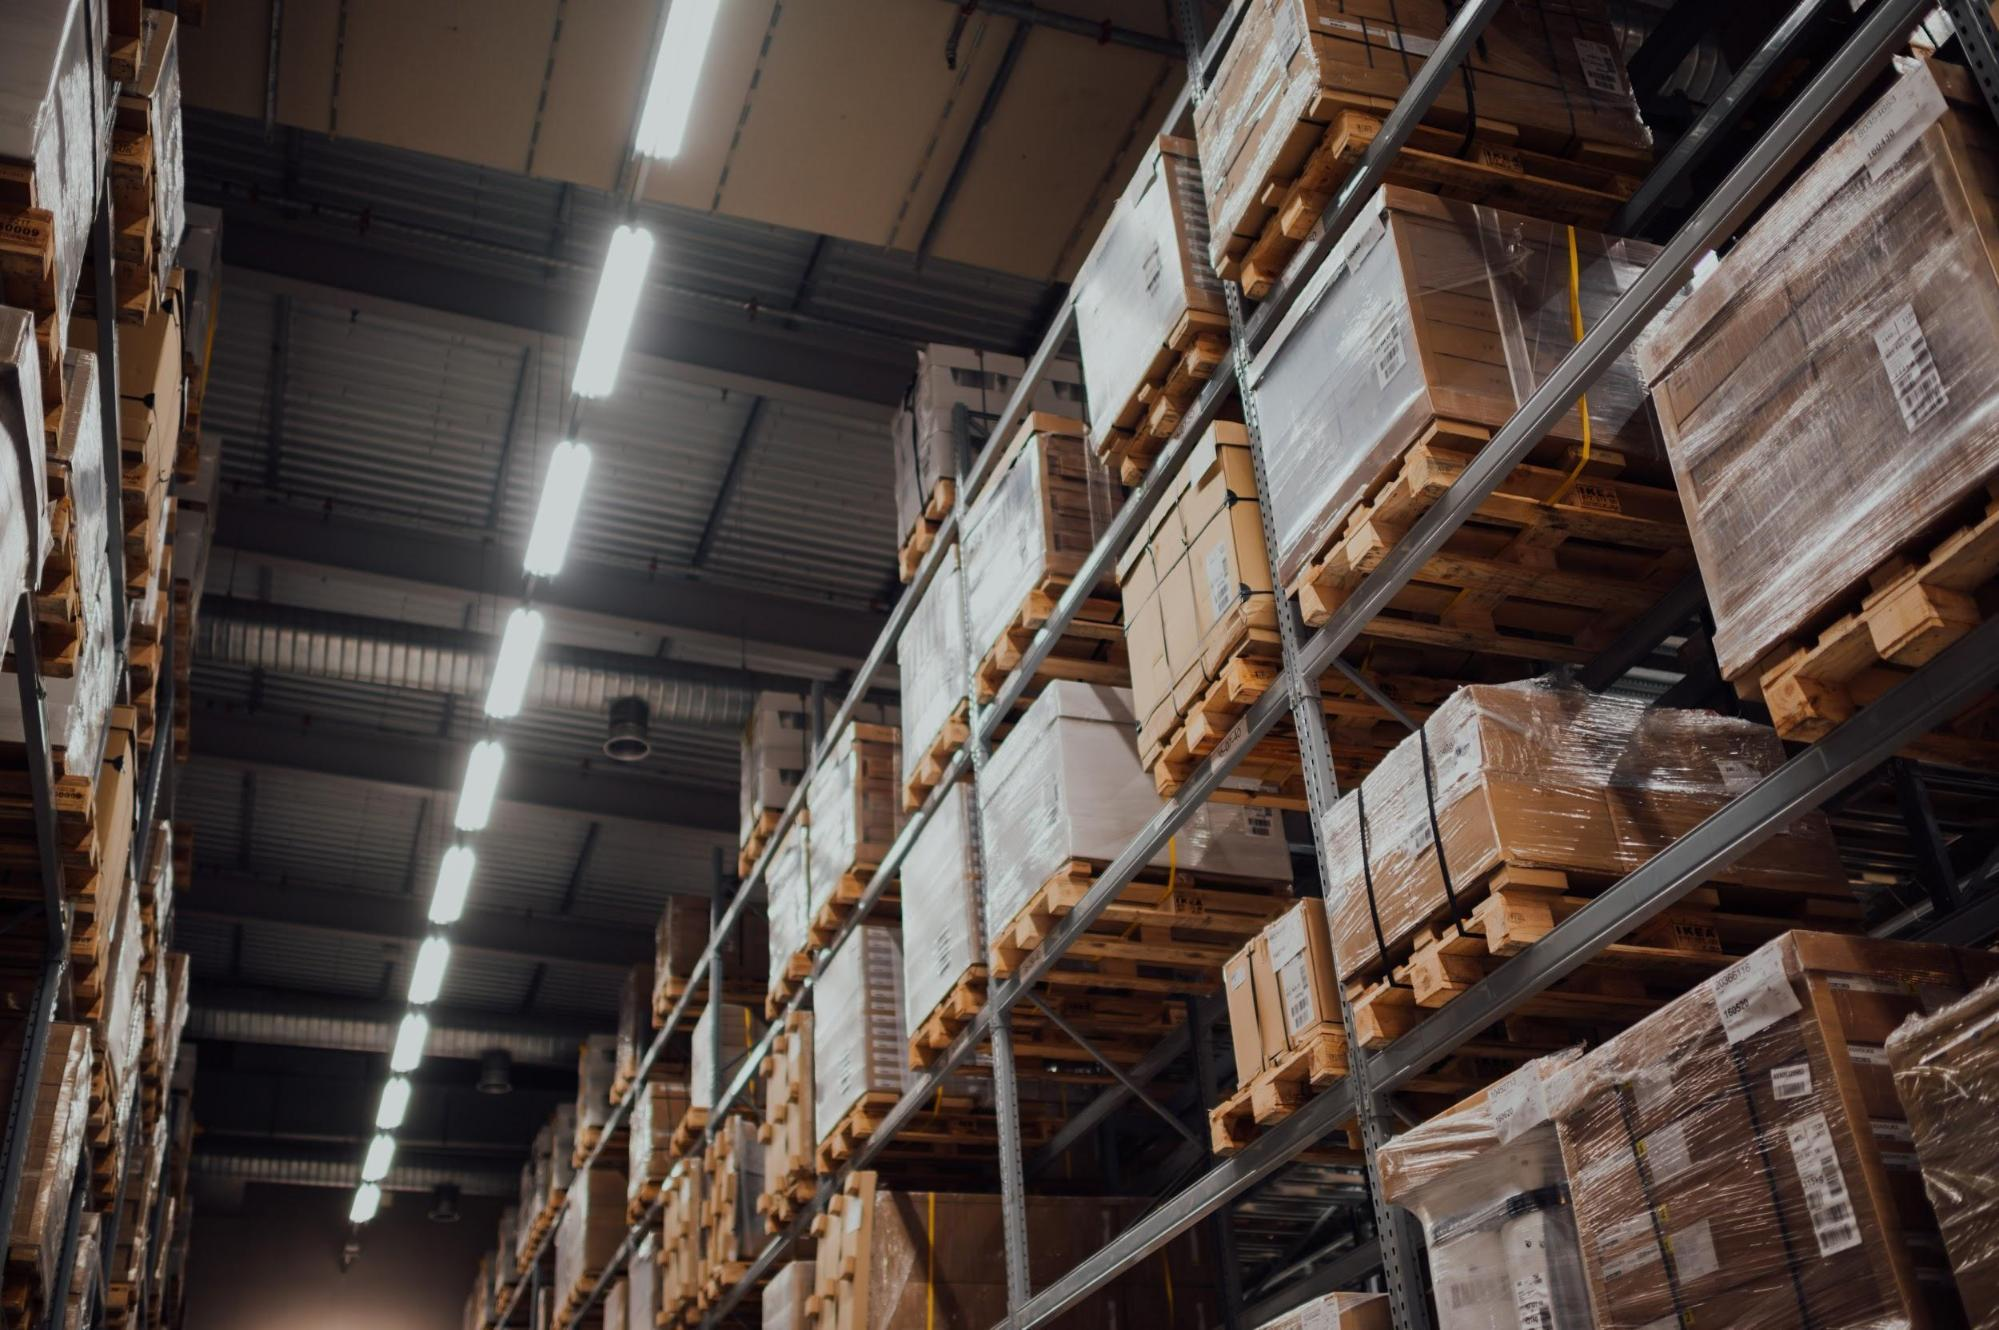 image showing the inside of a distribution warehouse which shows several pallets of products. Highlighting how COVID-19 has increased demand on logistics and driven digitalisation in the logistics sector